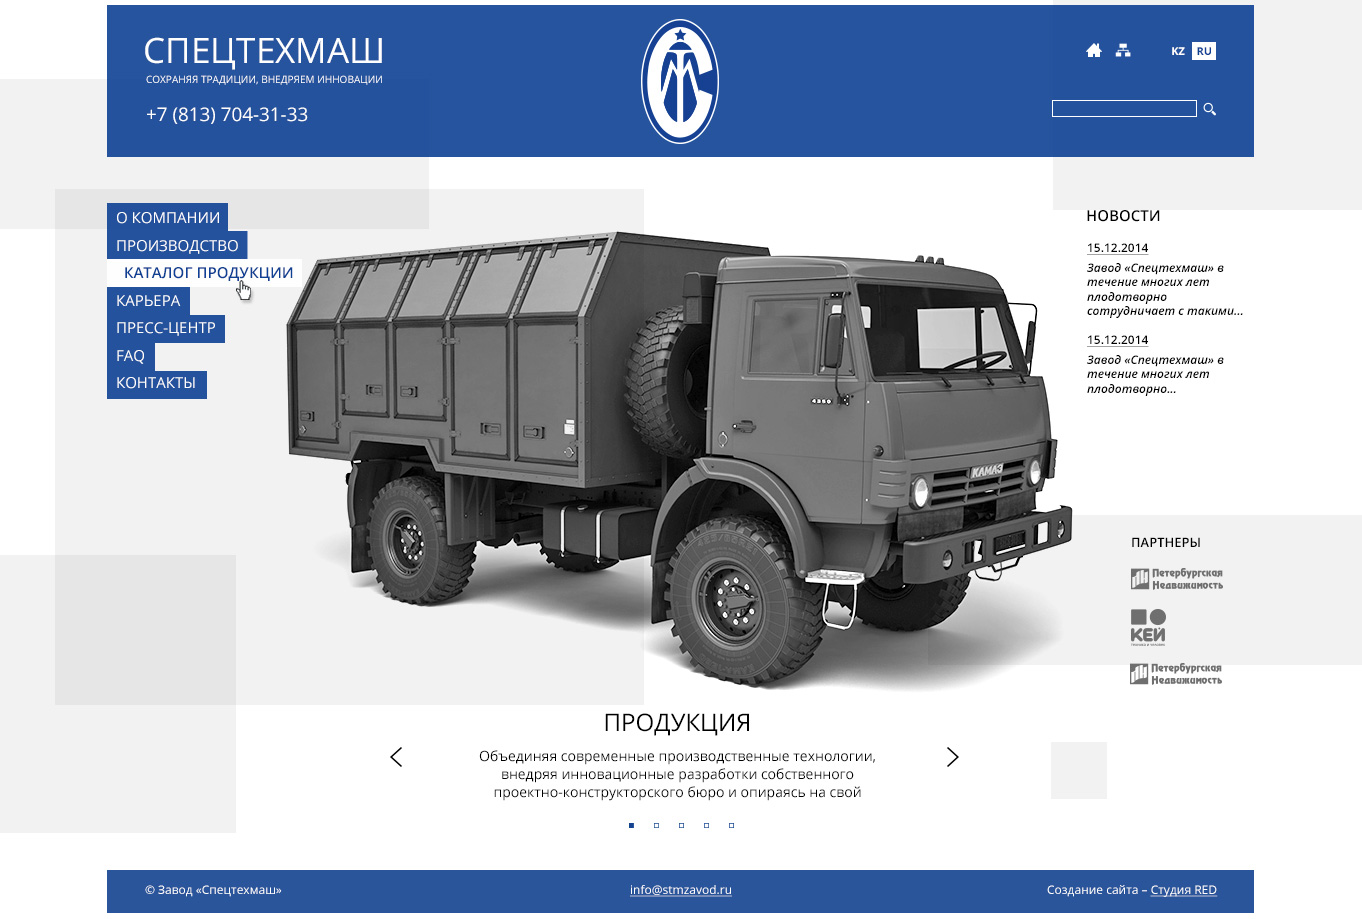 site design, gyár, SpetsTehMash